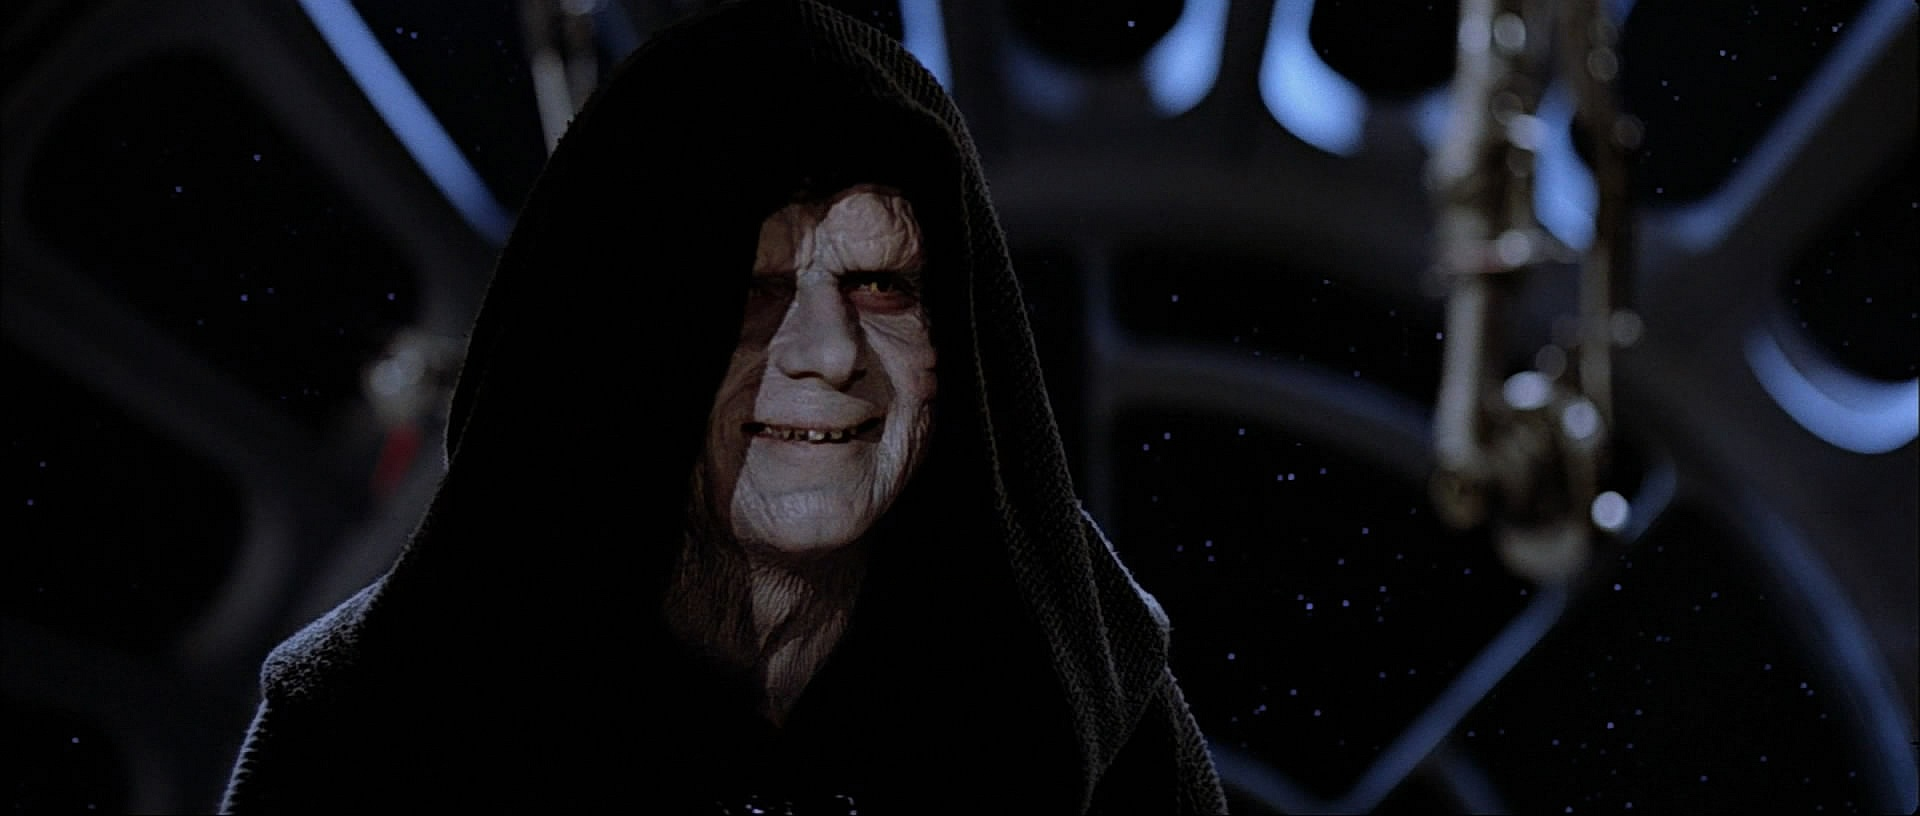 Emperor Palpatine Release Your Anger The First Rumored Star Wars: Episode VII Title Is The Ancient Fear